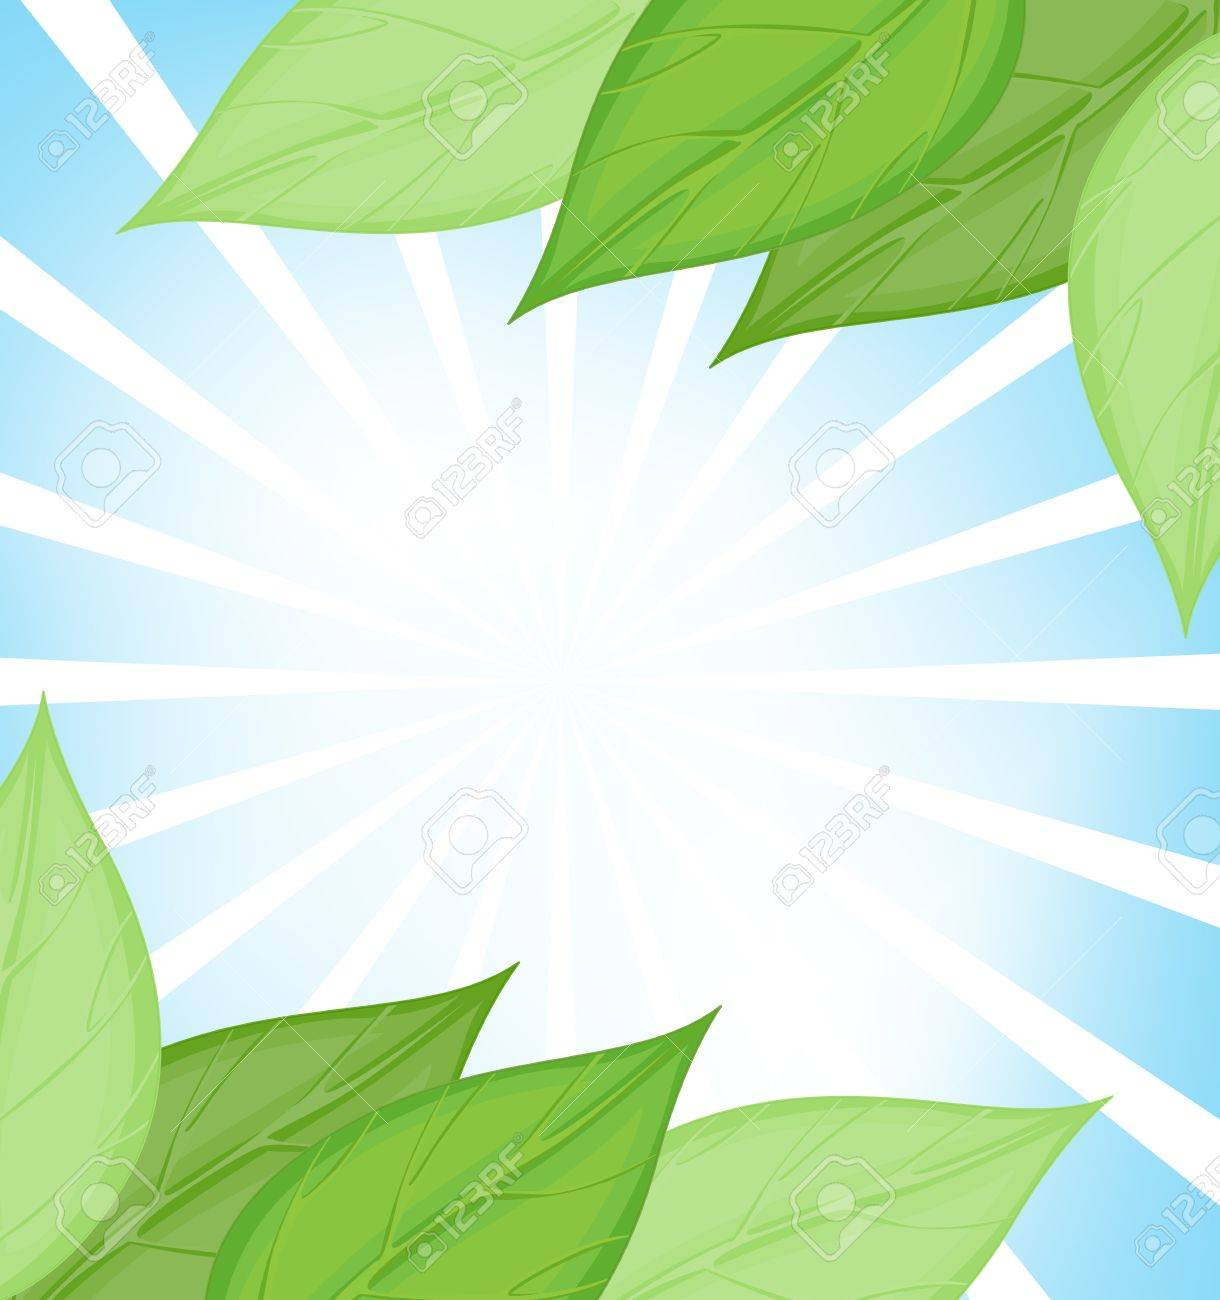 Illustration of a green leaf template Stock Vector - 13524640